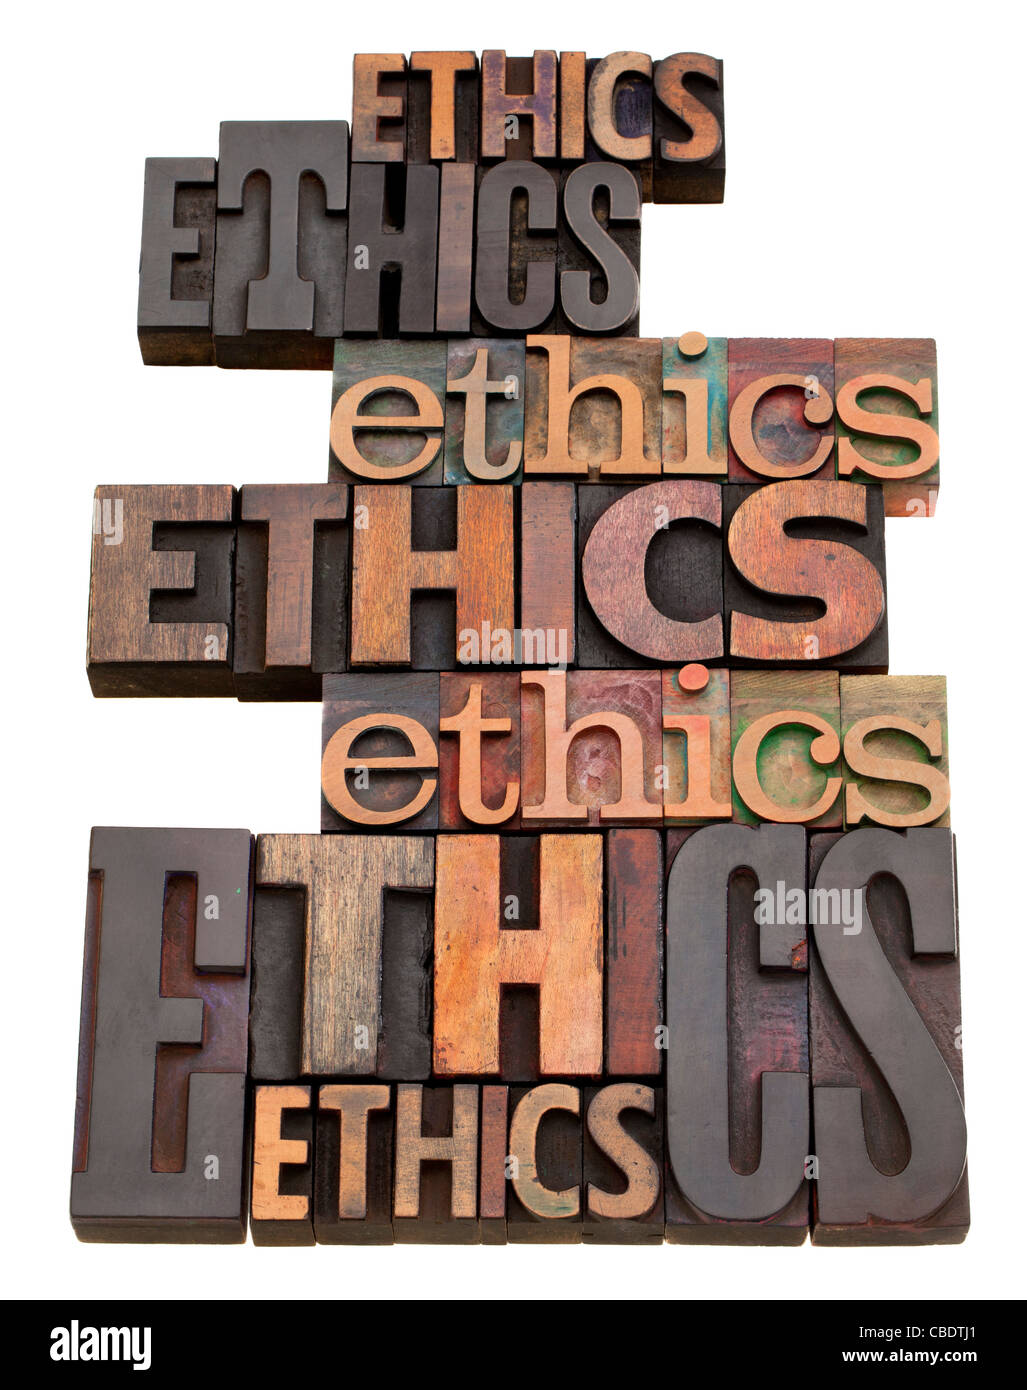 ethics word collage in vintage wood letterpress printing blocks, isolated on white, variety of fonts - Stock Image